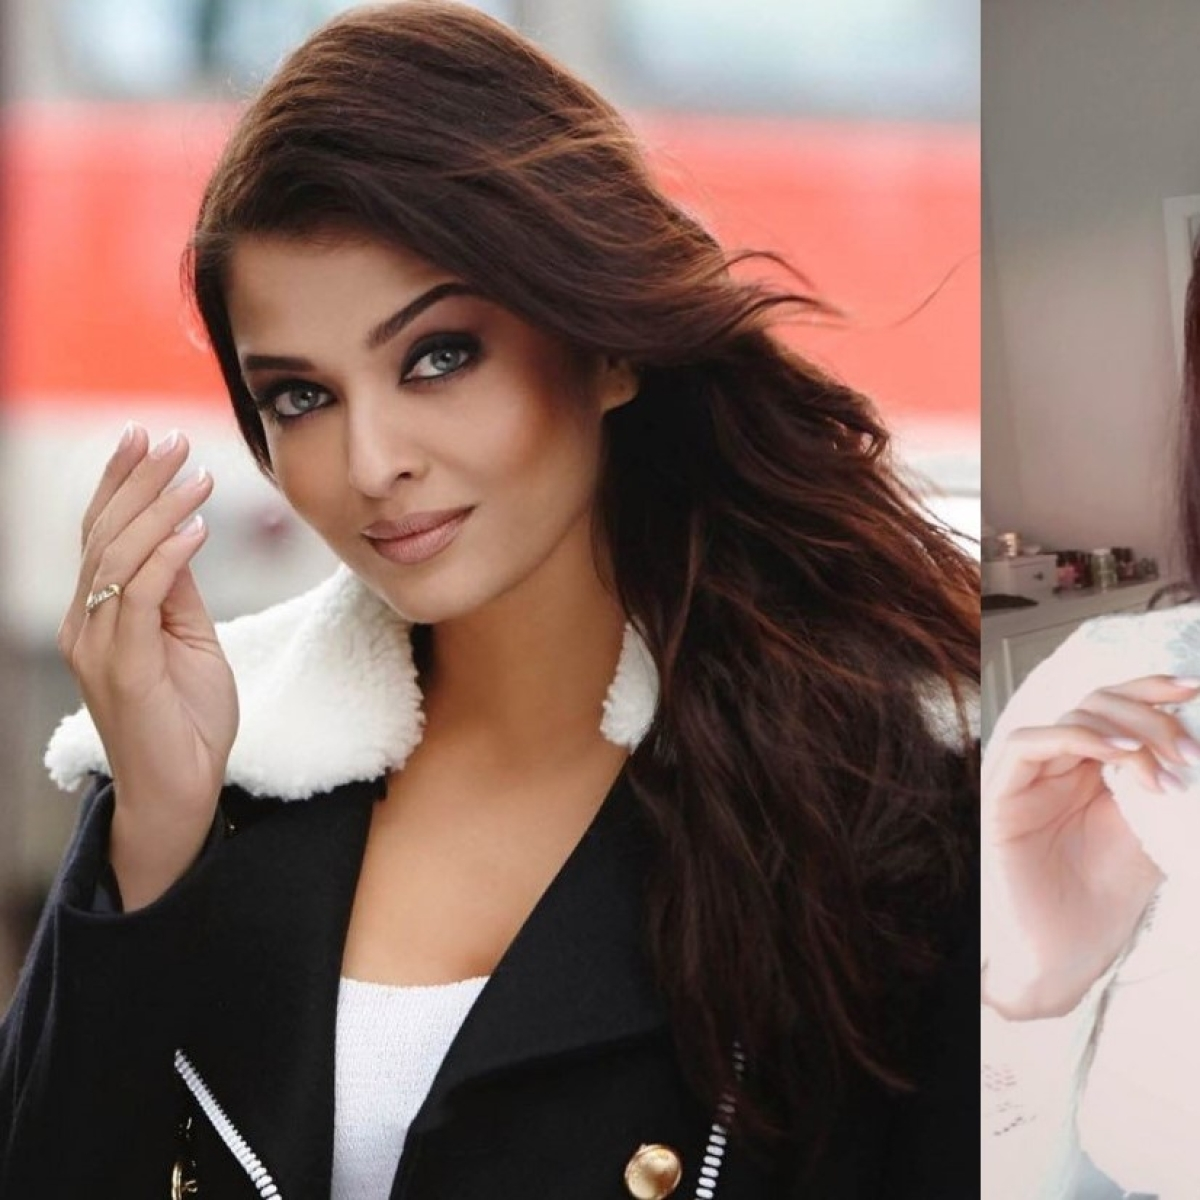 This Pakistani beauty blogger joins the list of Aishwarya Rai Bachchan's doppelgangers